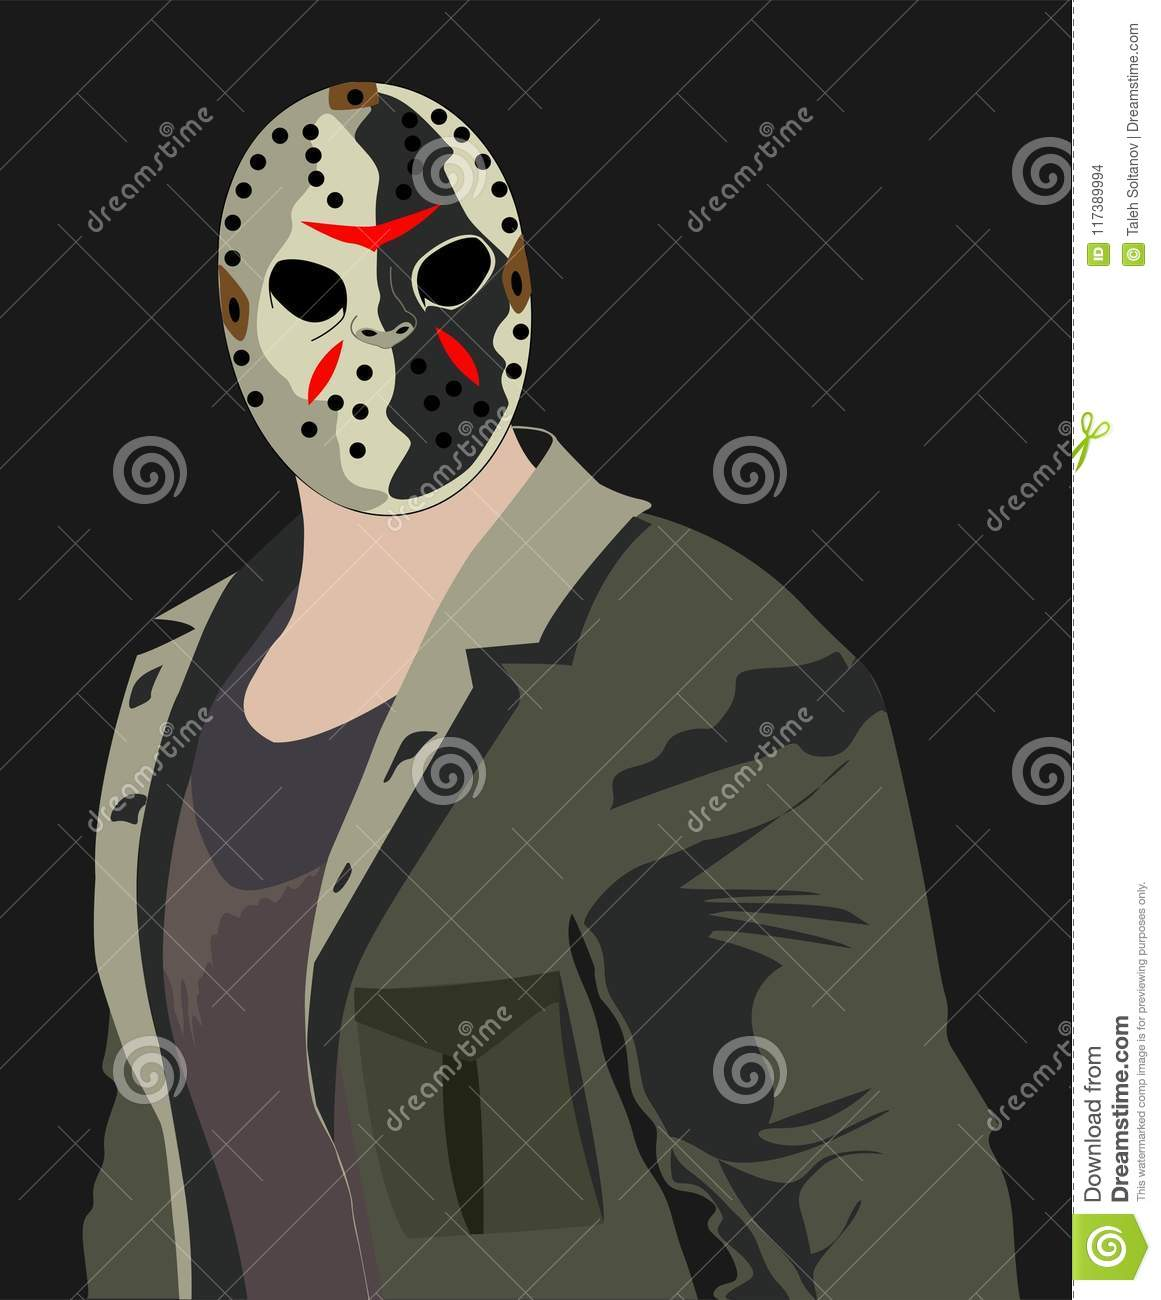 Jason Voorhees Horror Portret Stock Vector Illustration Of Face